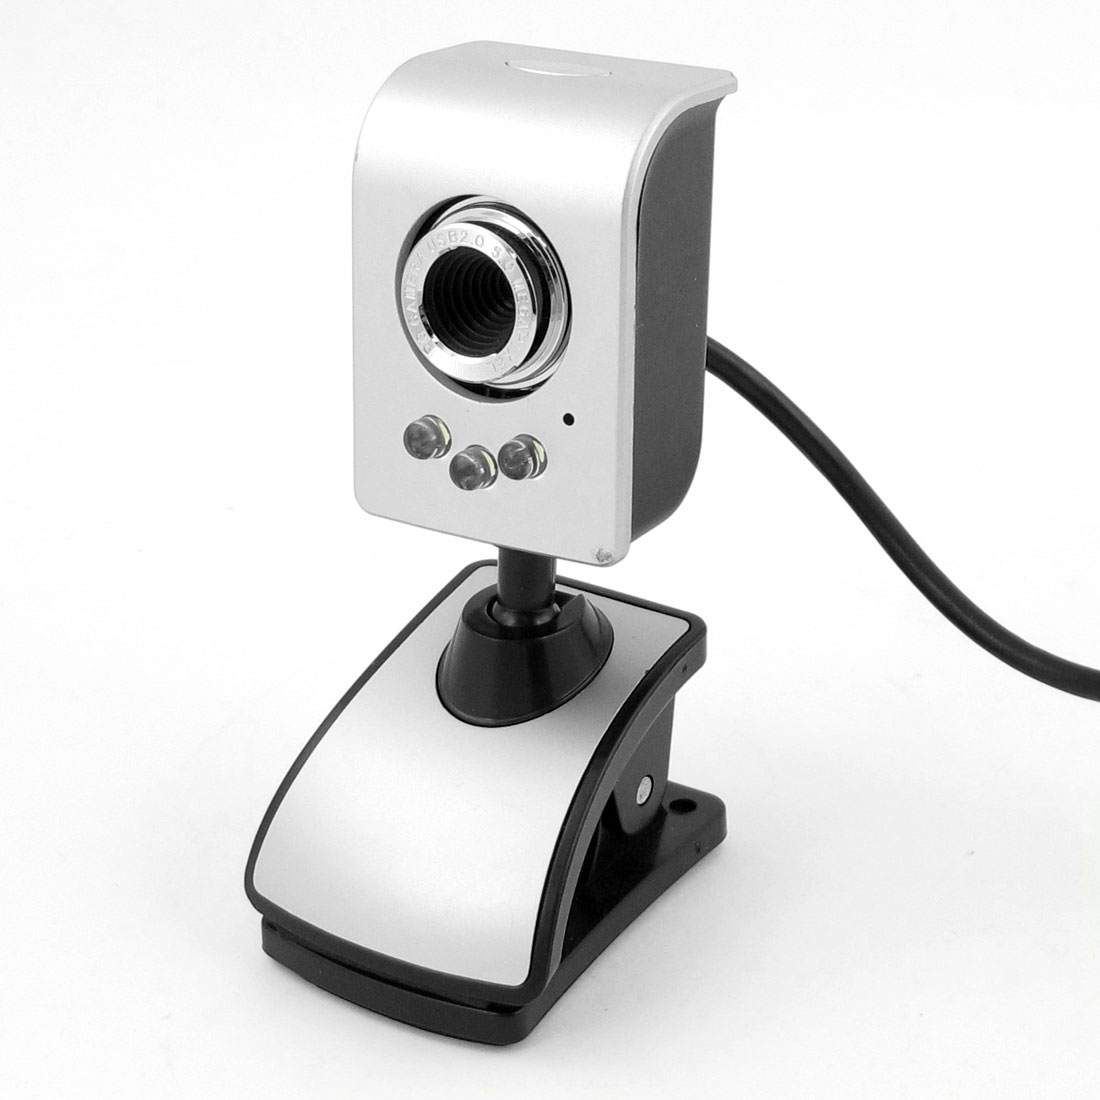 Video Chat 1.3M Pixels 3-LED USB Clip Web Cam Camera w Microphone for Laptop PC